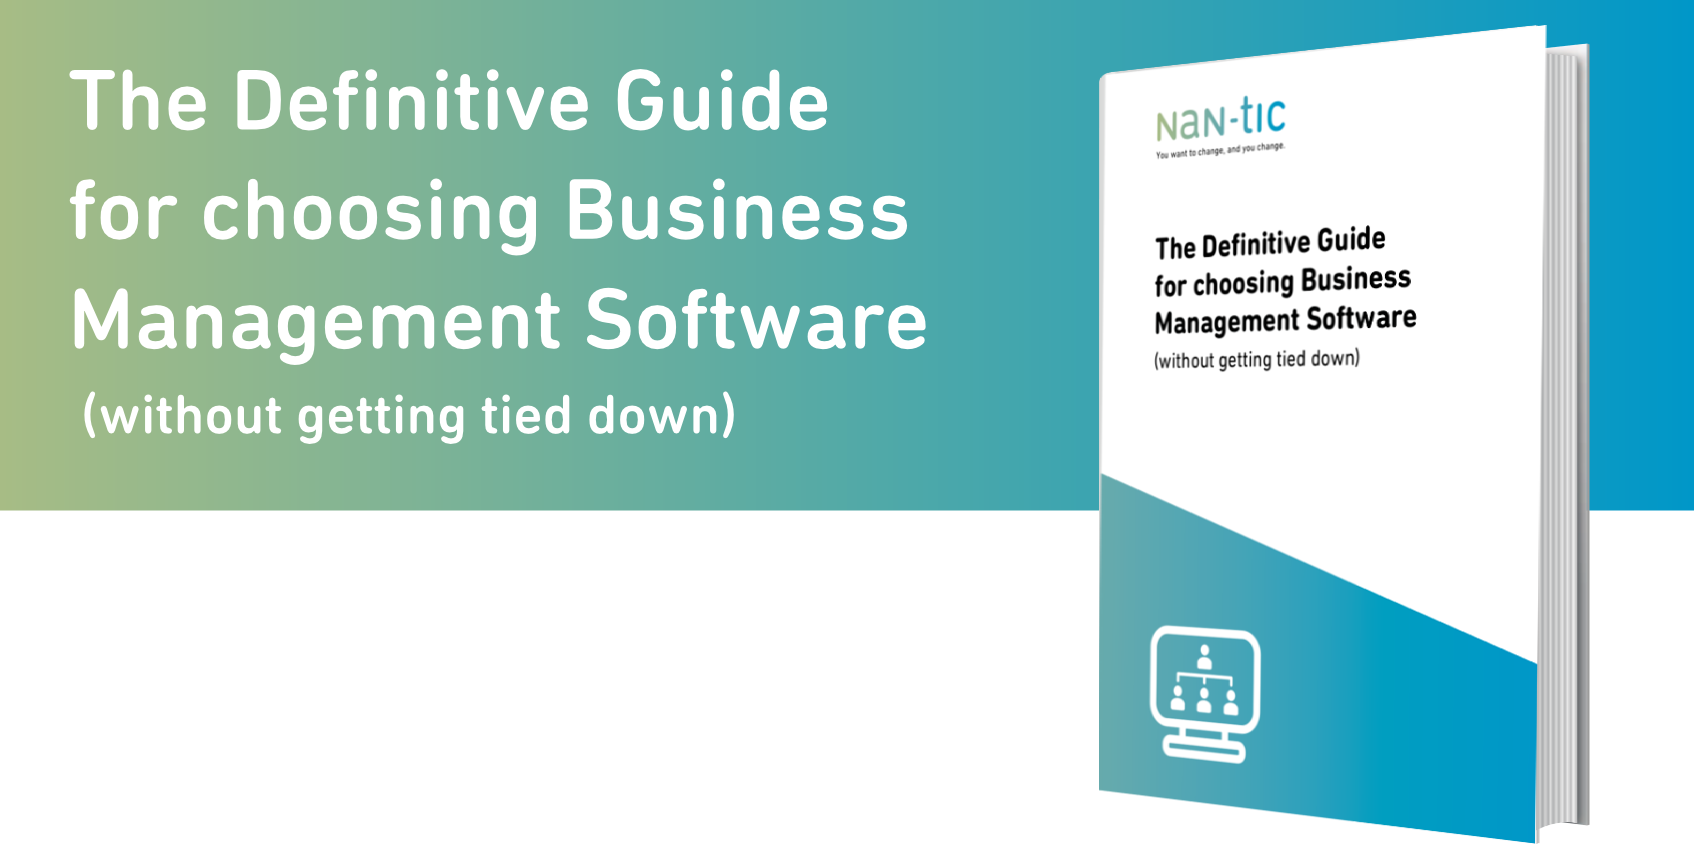 The Definitive Guide for Choosing Business Management Software